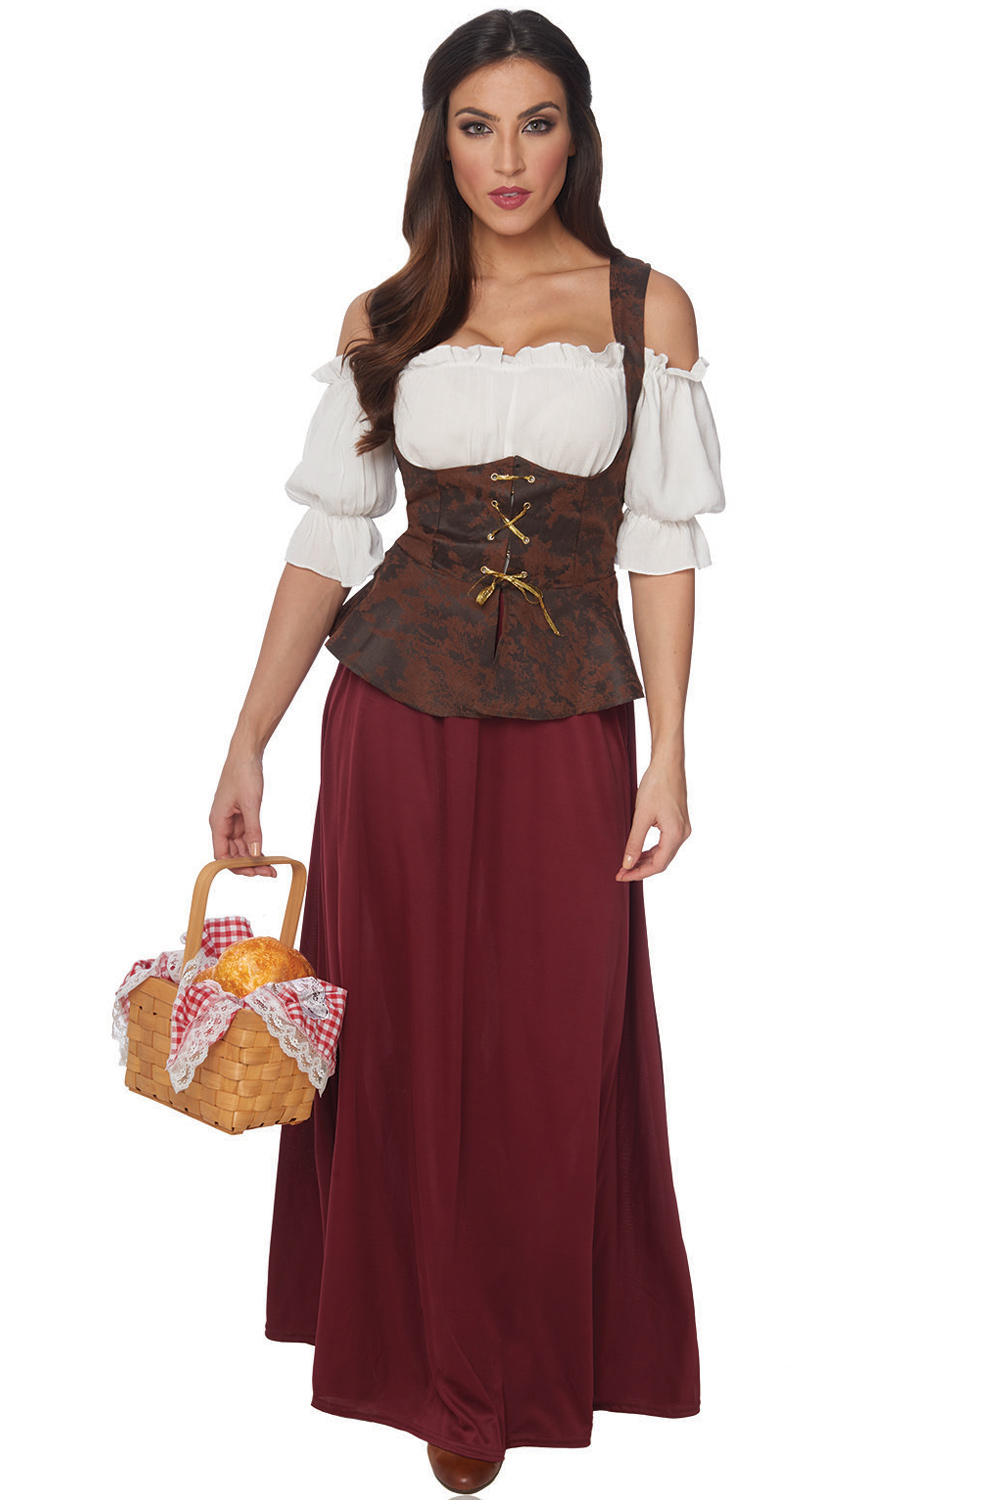 Renaissance clothing for women